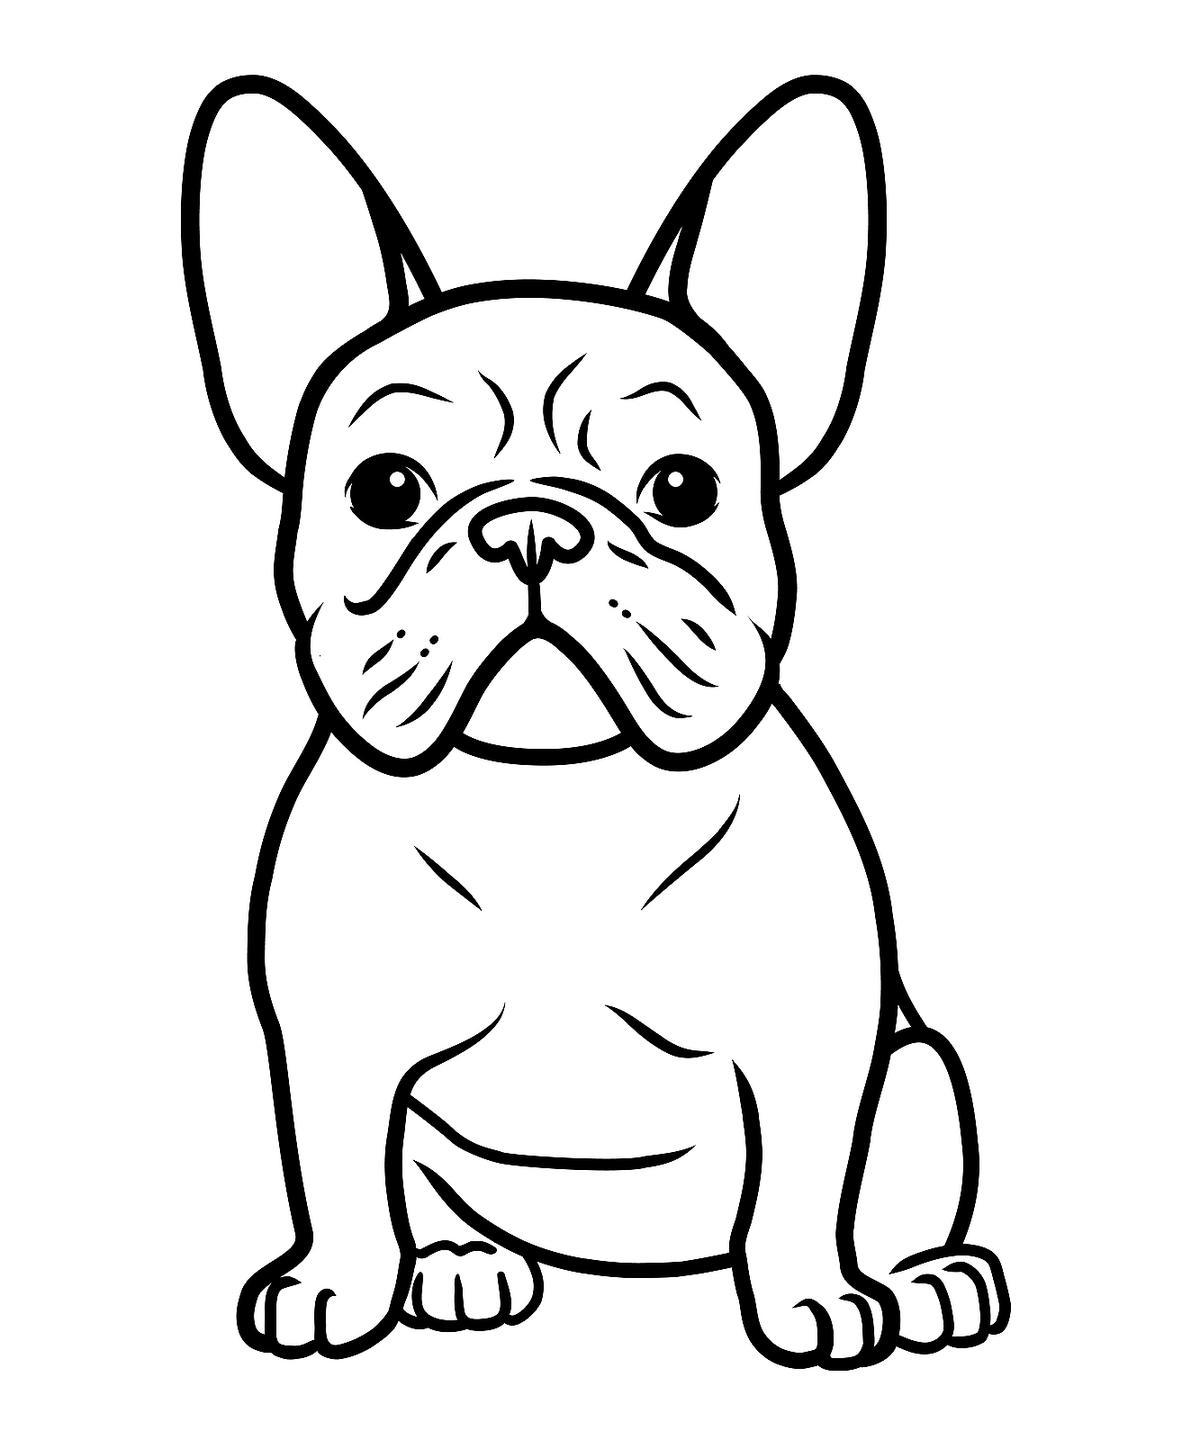 dog coloring printable dog coloring pages for kids dog coloring